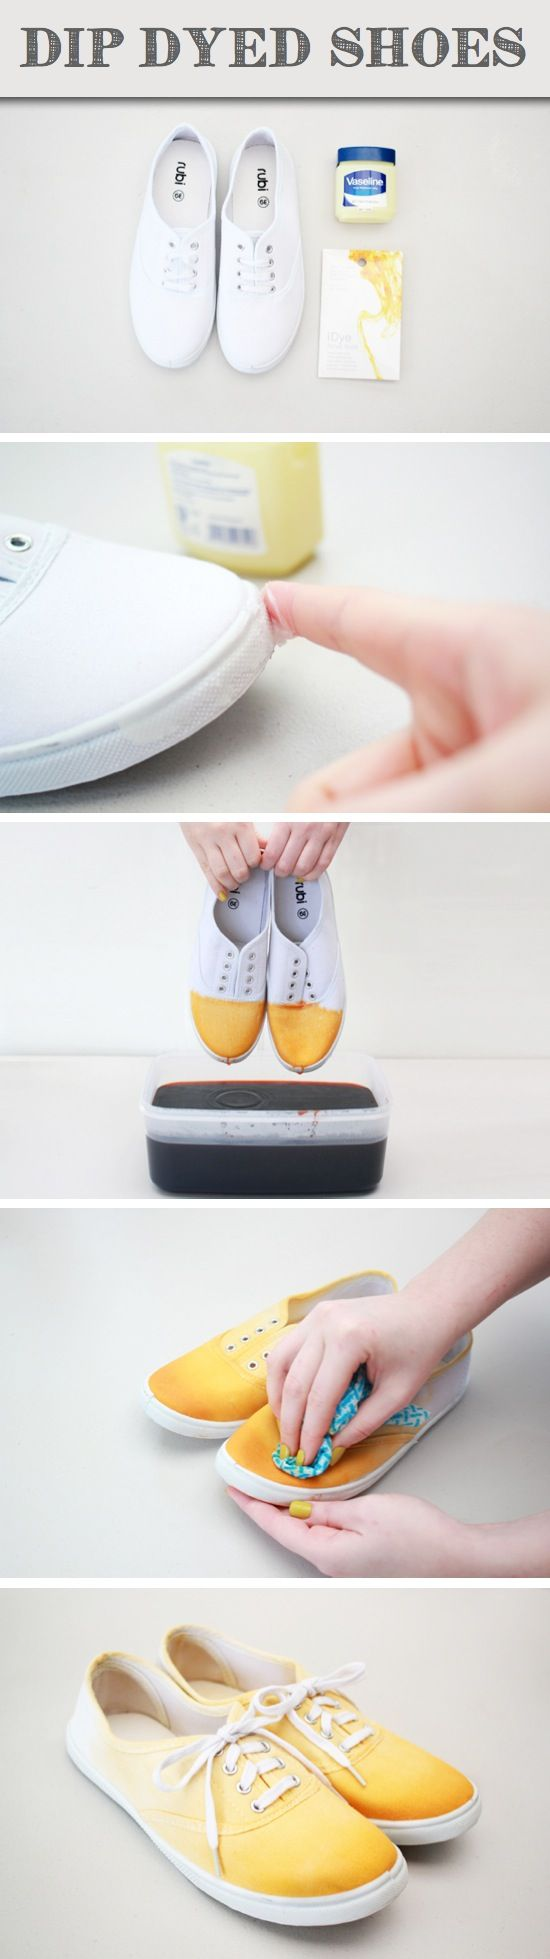 Dip-dye your shoes